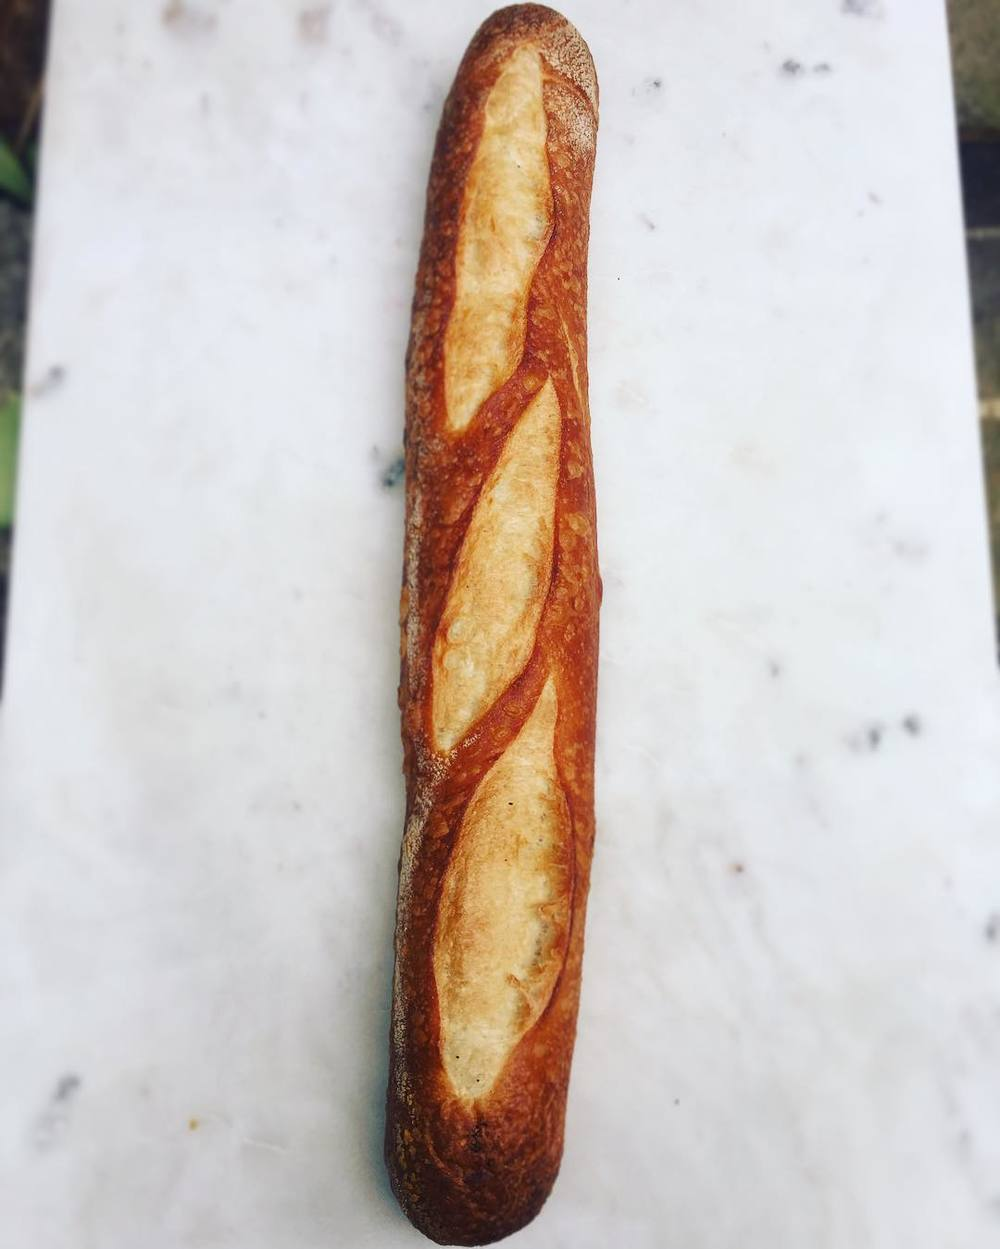 One French baguette can never be enough! Especially when you are seeing first hand how the bread is prepared in one of the oldest ovens in the city of Paris. Today is the last day to register for A Taste of Paris April 2017 and A Taste of Paris/Champagne September 2017 at 2016 prices! Don't miss your chance to taste your way through the city on a culinary adventure of a lifetime! Seats are going fast! Click HERE for more information and to have pricing delivered to your email box.